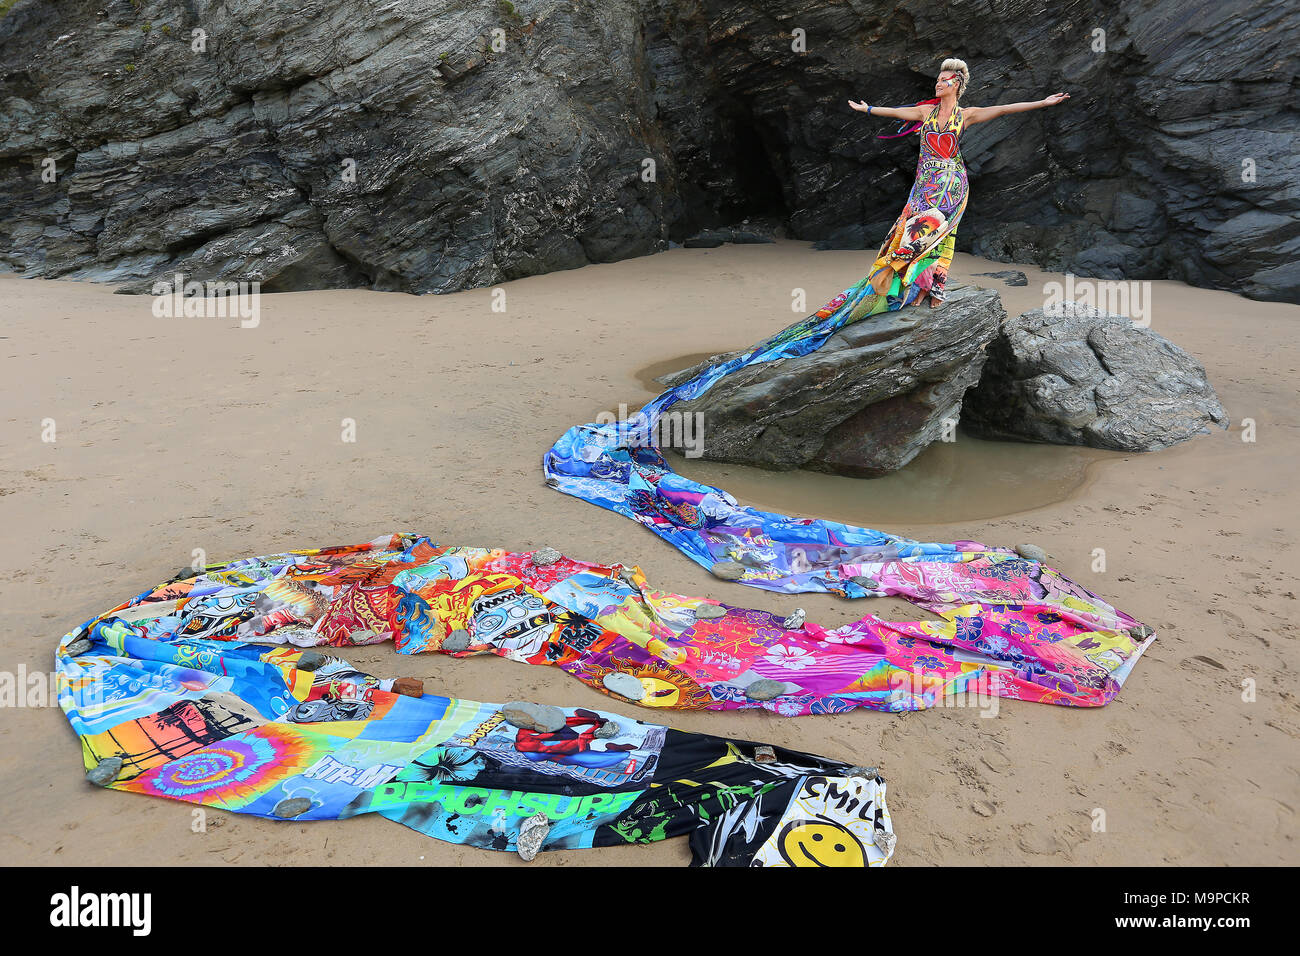 Emma Adsams wears a dress made out of 100 discarded bodyboards to highlight the impact of beach waste on the marine environment. The dress has a 72 fo - Stock Image